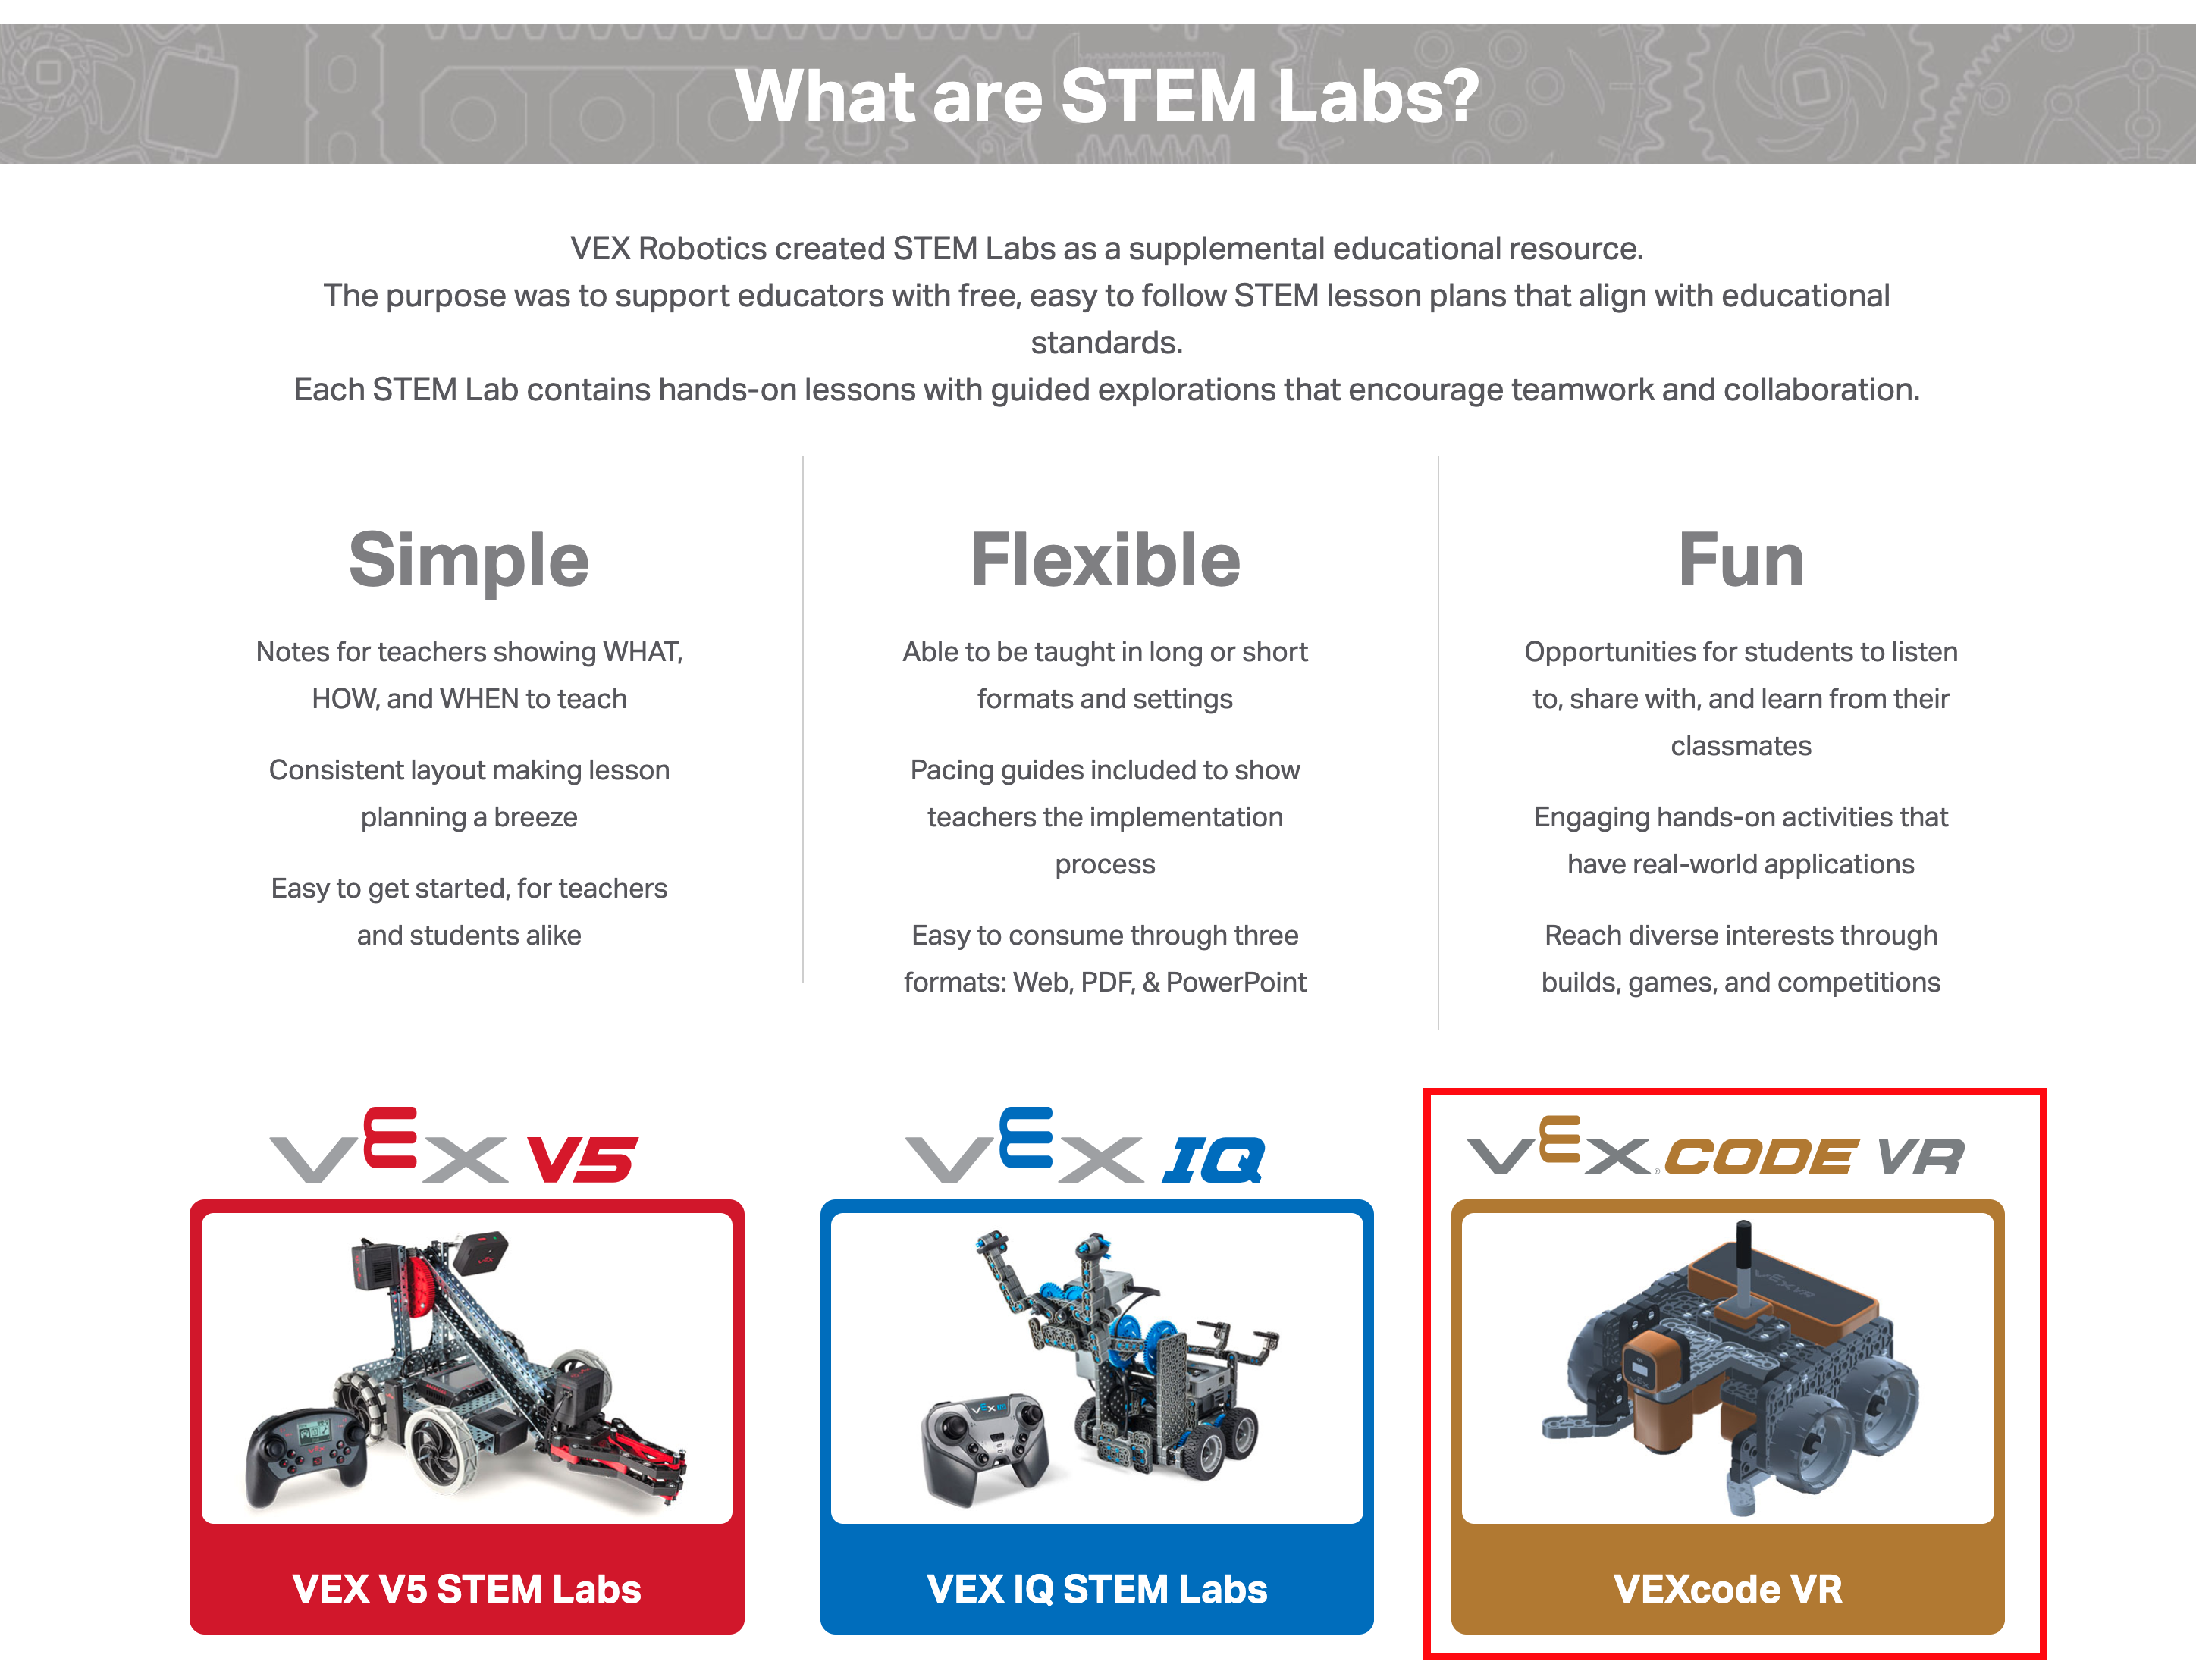 The VEXcode VR button on education.vex.com